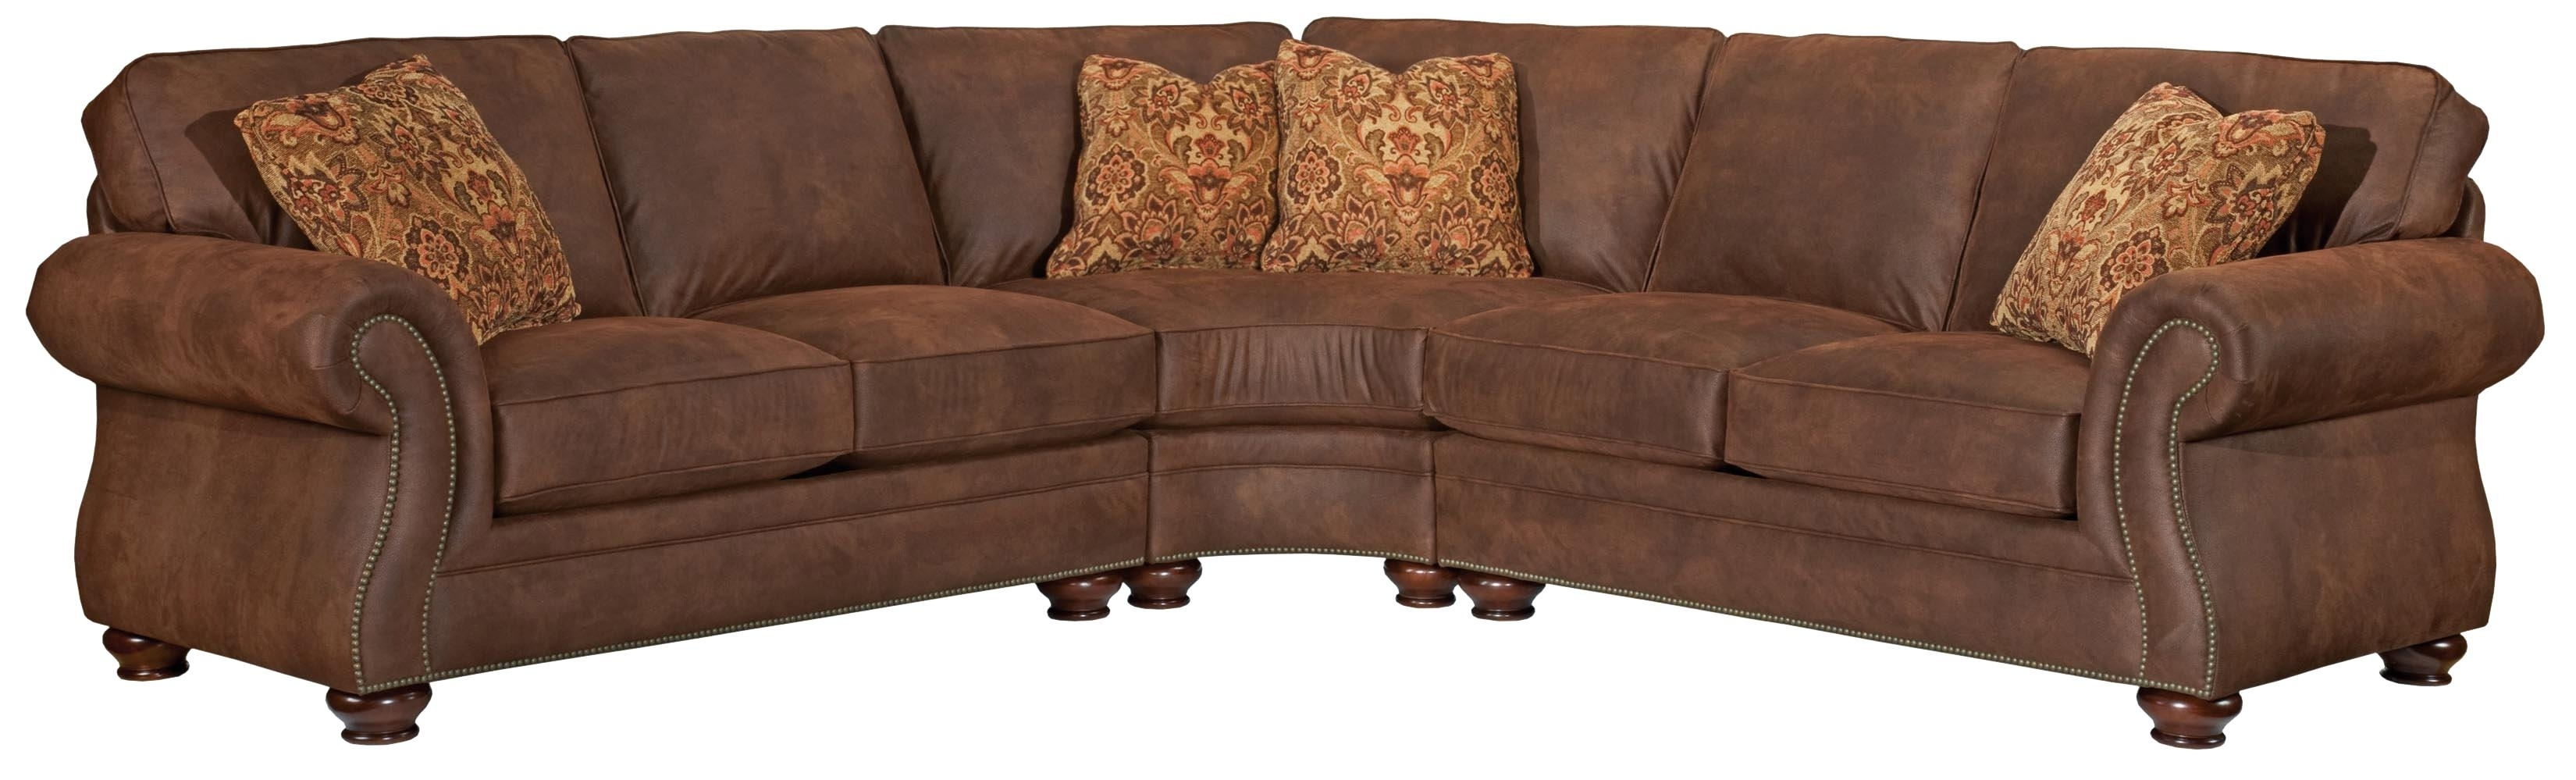 Popular Photo of Sectional Sofas At Broyhill